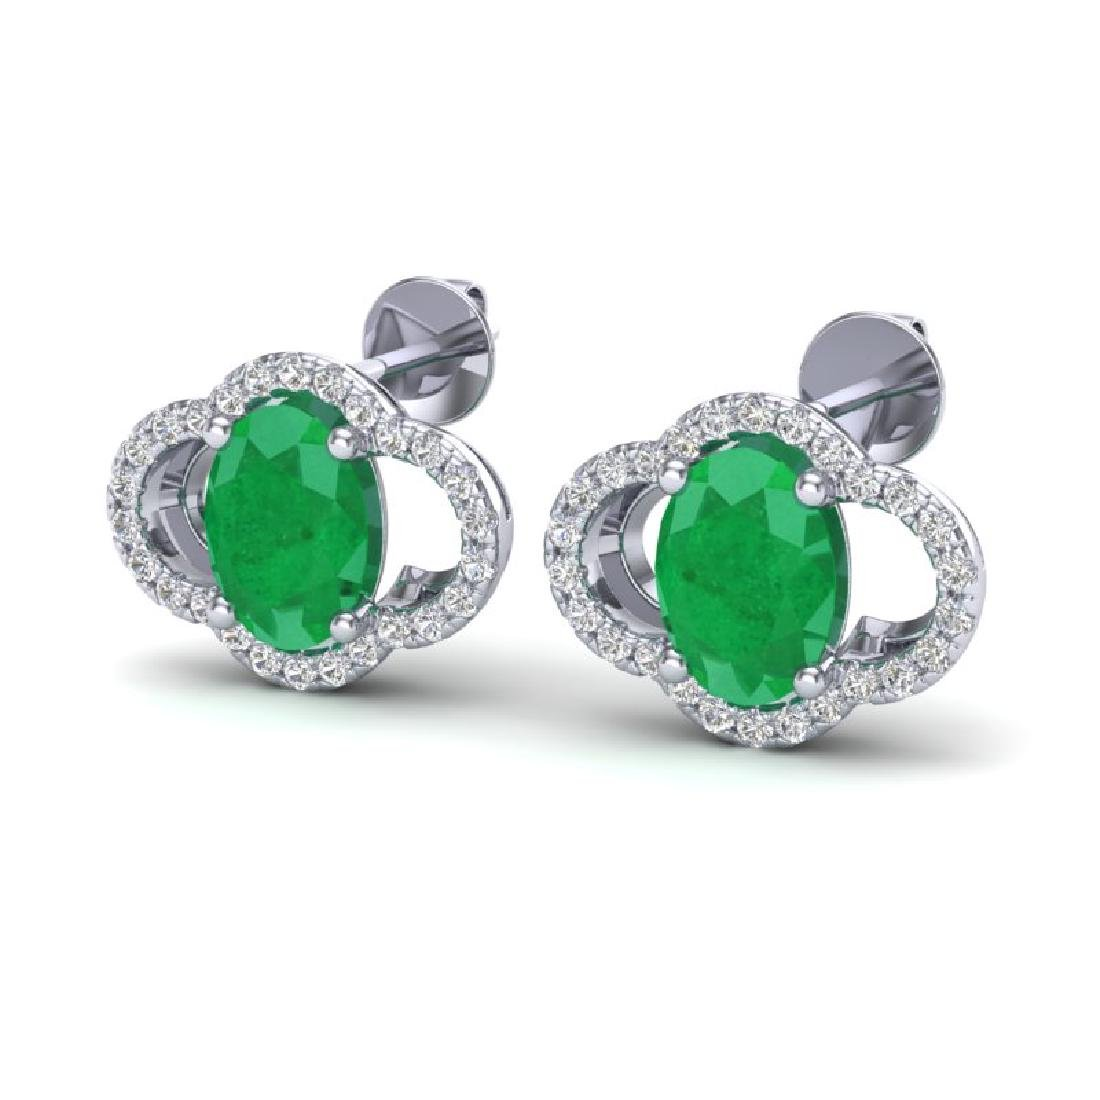 4 CTW Emerald & Micro Pave VS/SI Diamond Earrings 10K